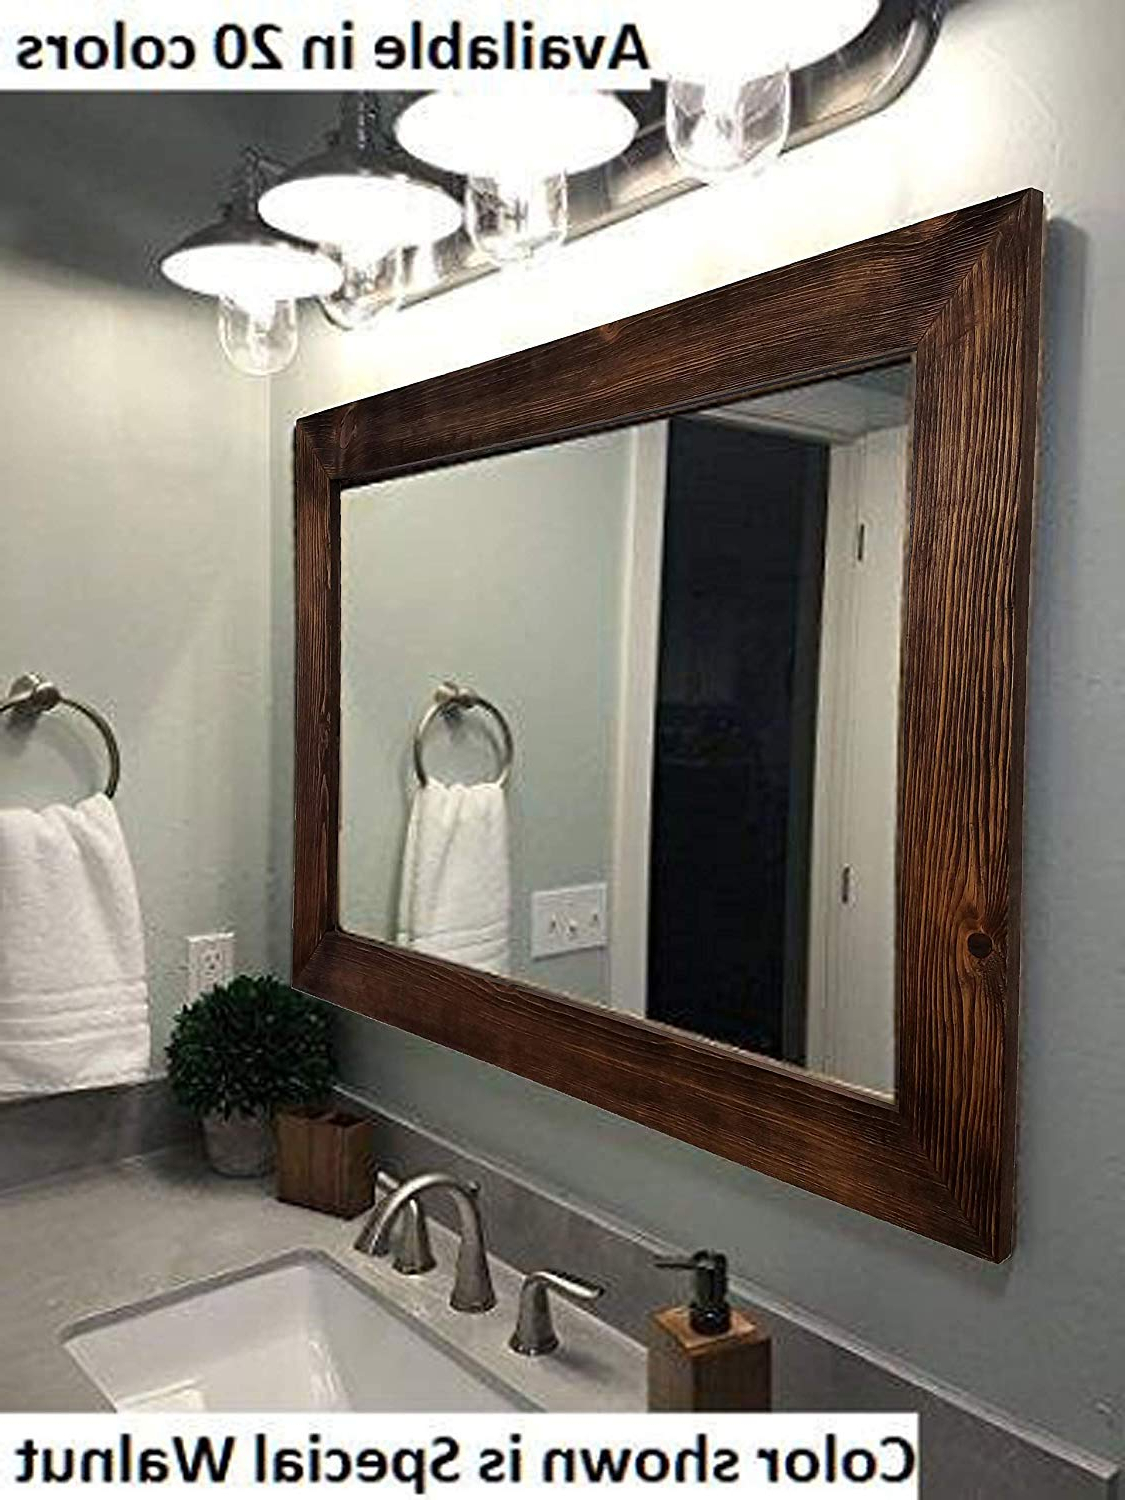 Shiplap Large Wood Framed Mirror Available In 4 Sizes And 20 Colors: Shown  In Special Walnut Stain – Large Wall Mirror – Rustic Barnwood Style – Within 2020 Walnut Wood Wall Mirrors (View 13 of 20)